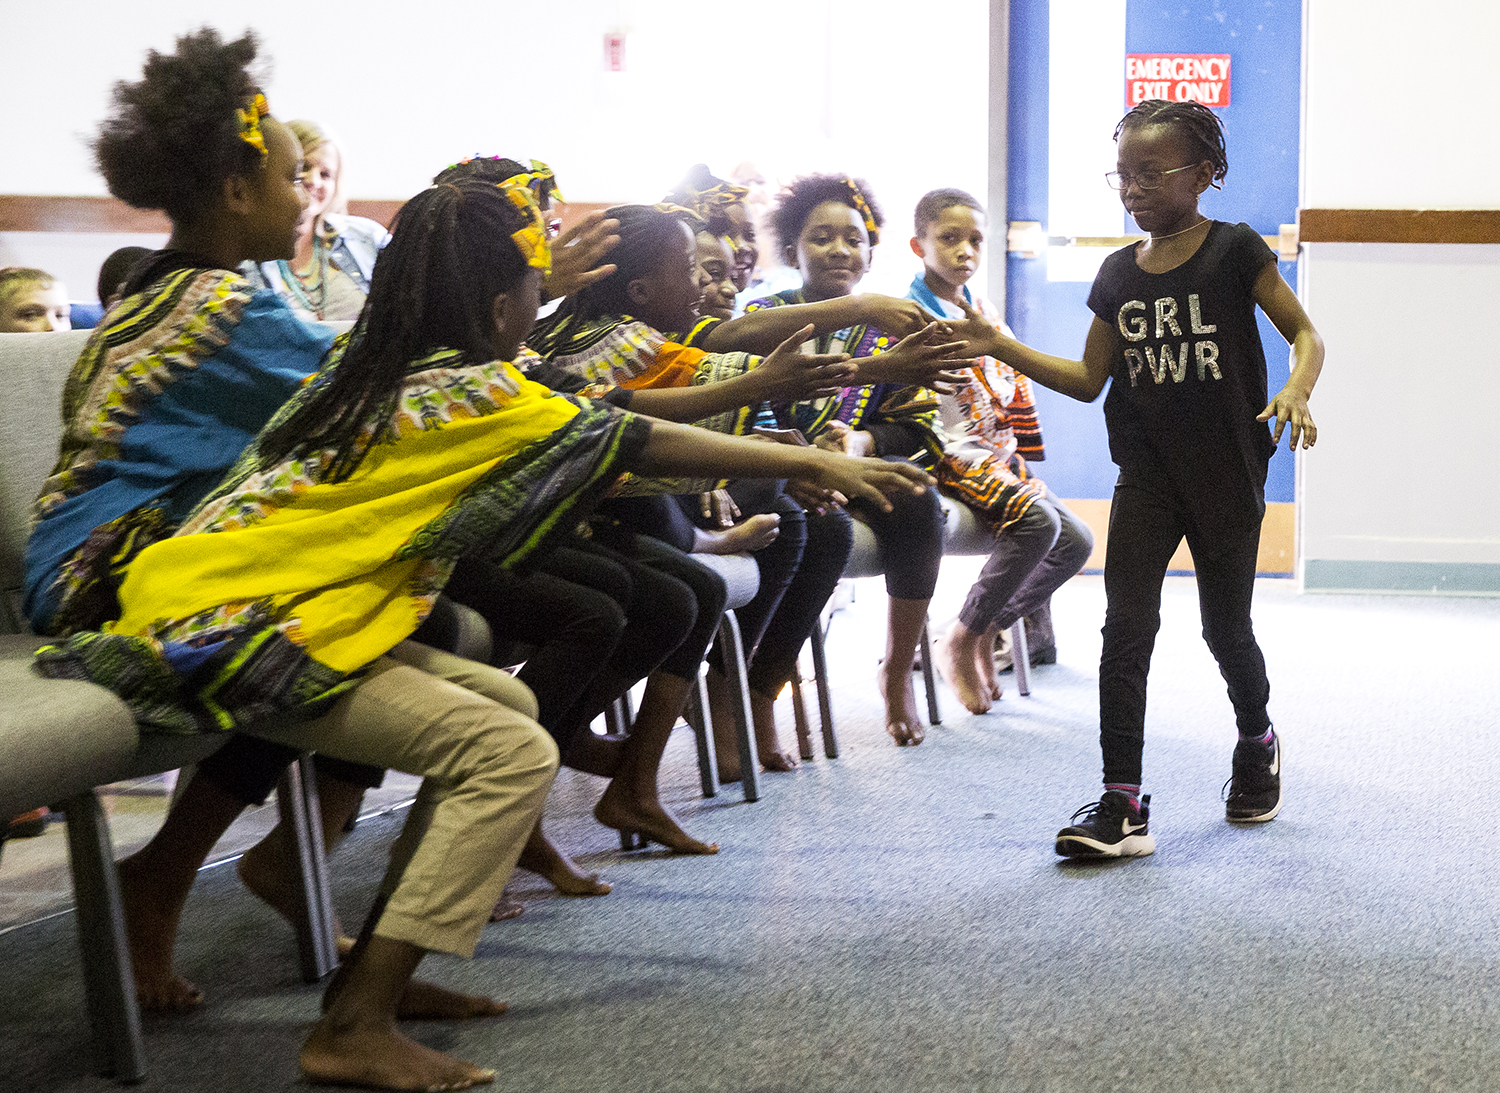 Fourth grader Allanah Lowery is congratulated by other students after her solo dance performance during the Black History Month Variety Show at Feitshans Elementary Tuesday, Feb. 27, 2018  in Springfield, Ill. [Rich Saal/The State Journal-Register]